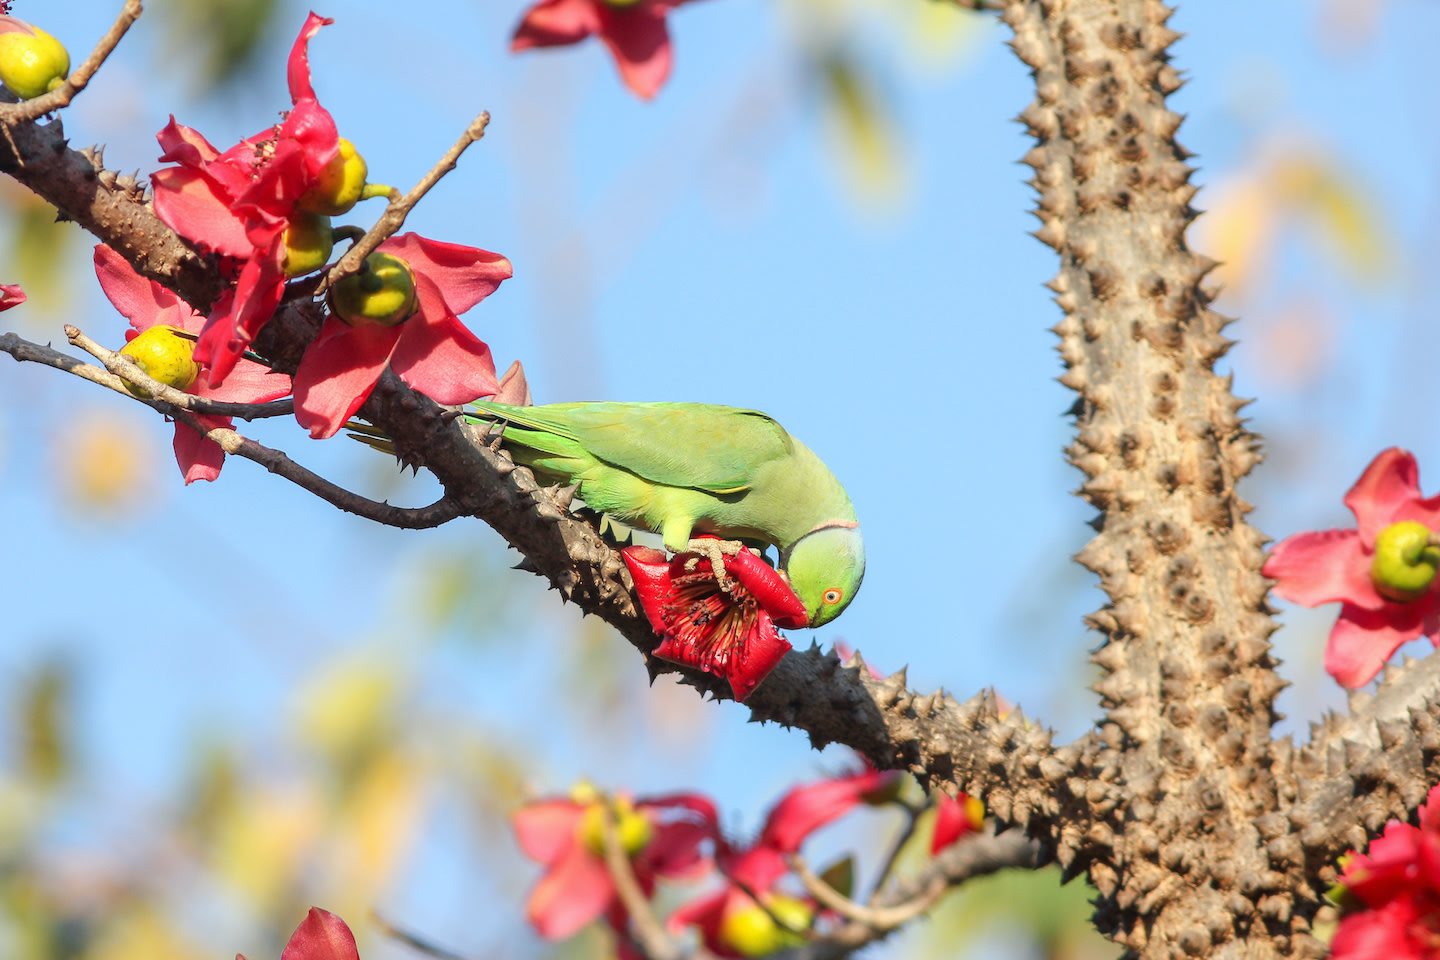 A rose-ringed parakeet eats a semal flower. The semal flowers once a year in the spring, the tree putting out gorgeous, red, yellow, or orange flowers which are eaten by scores of birds. Photo: Vickey Chauhan/Shutterstock  The first wild bird I fostered was an injured common myna, which feeds on insects, scavenged meat, and fruit. Photo (top): Cholpan/Shutterstock  A still from the film Life of Pi. In the film, the protagonist Pi is marooned on a boat at sea with a tiger called Richard Parker. Cover Photo courtesy: Fox Star India